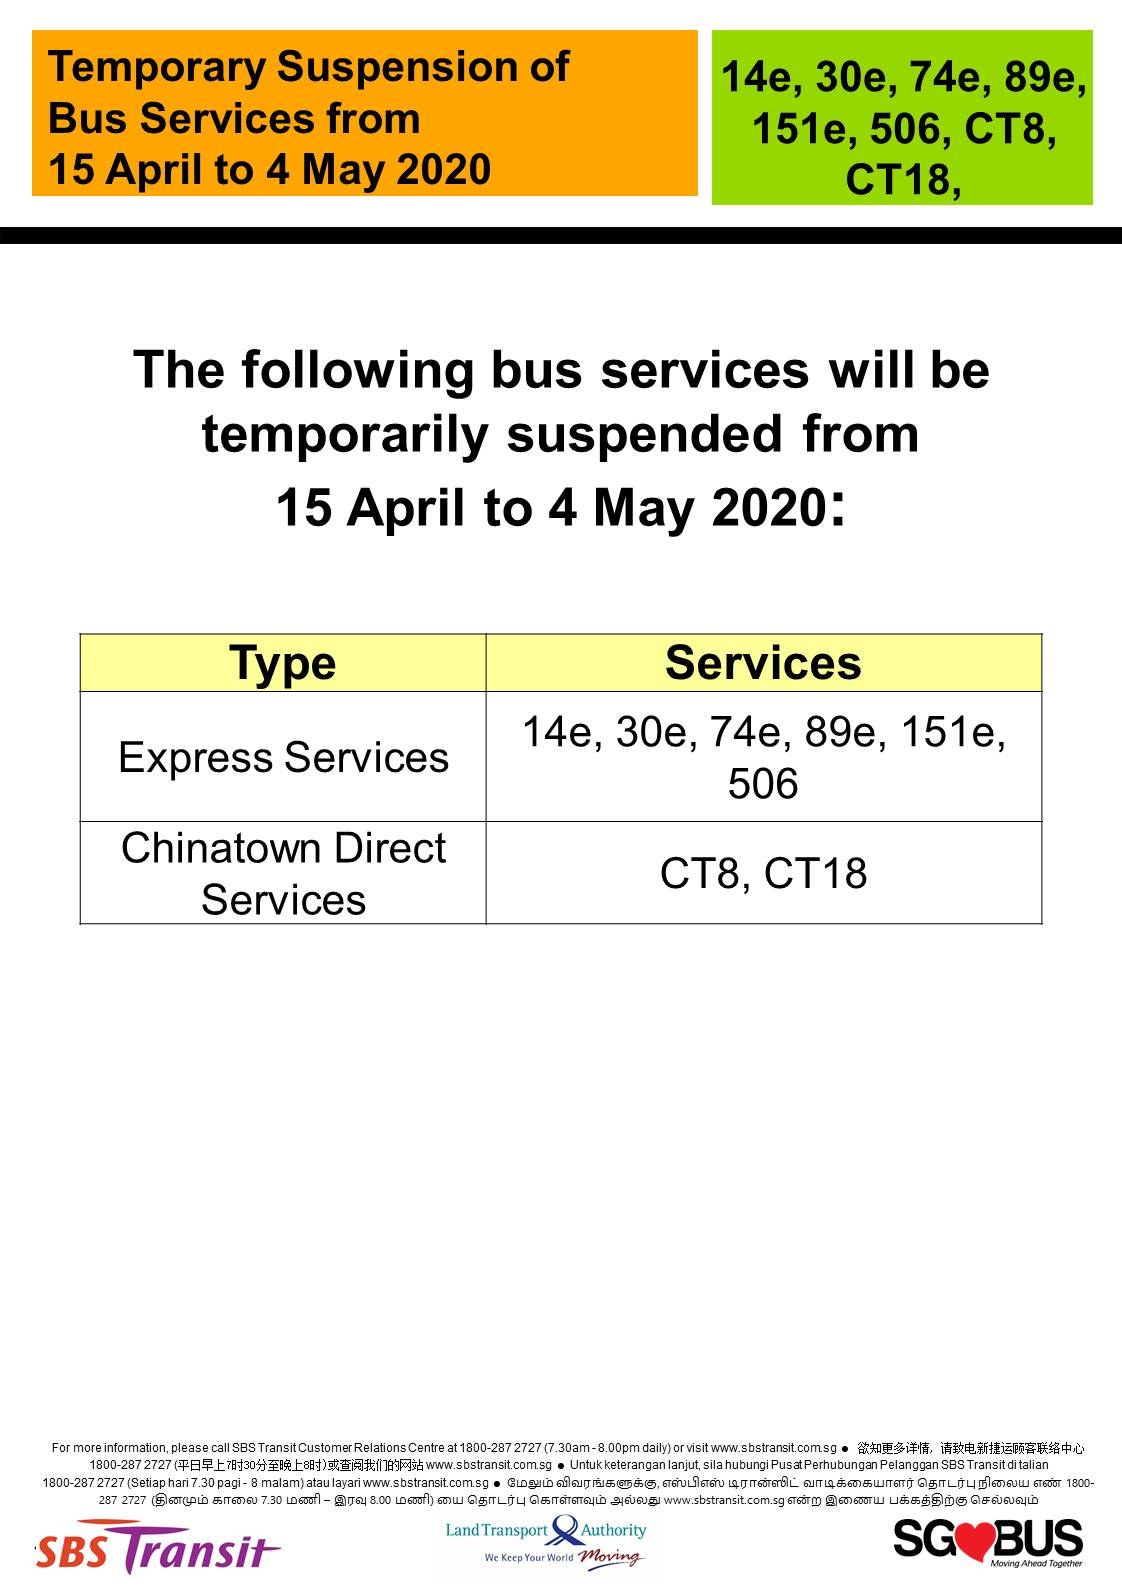 Official announcement from SBS Transit on temporary bus service suspension during COVID-19 Circuit Breaker measures 15 April 2020.